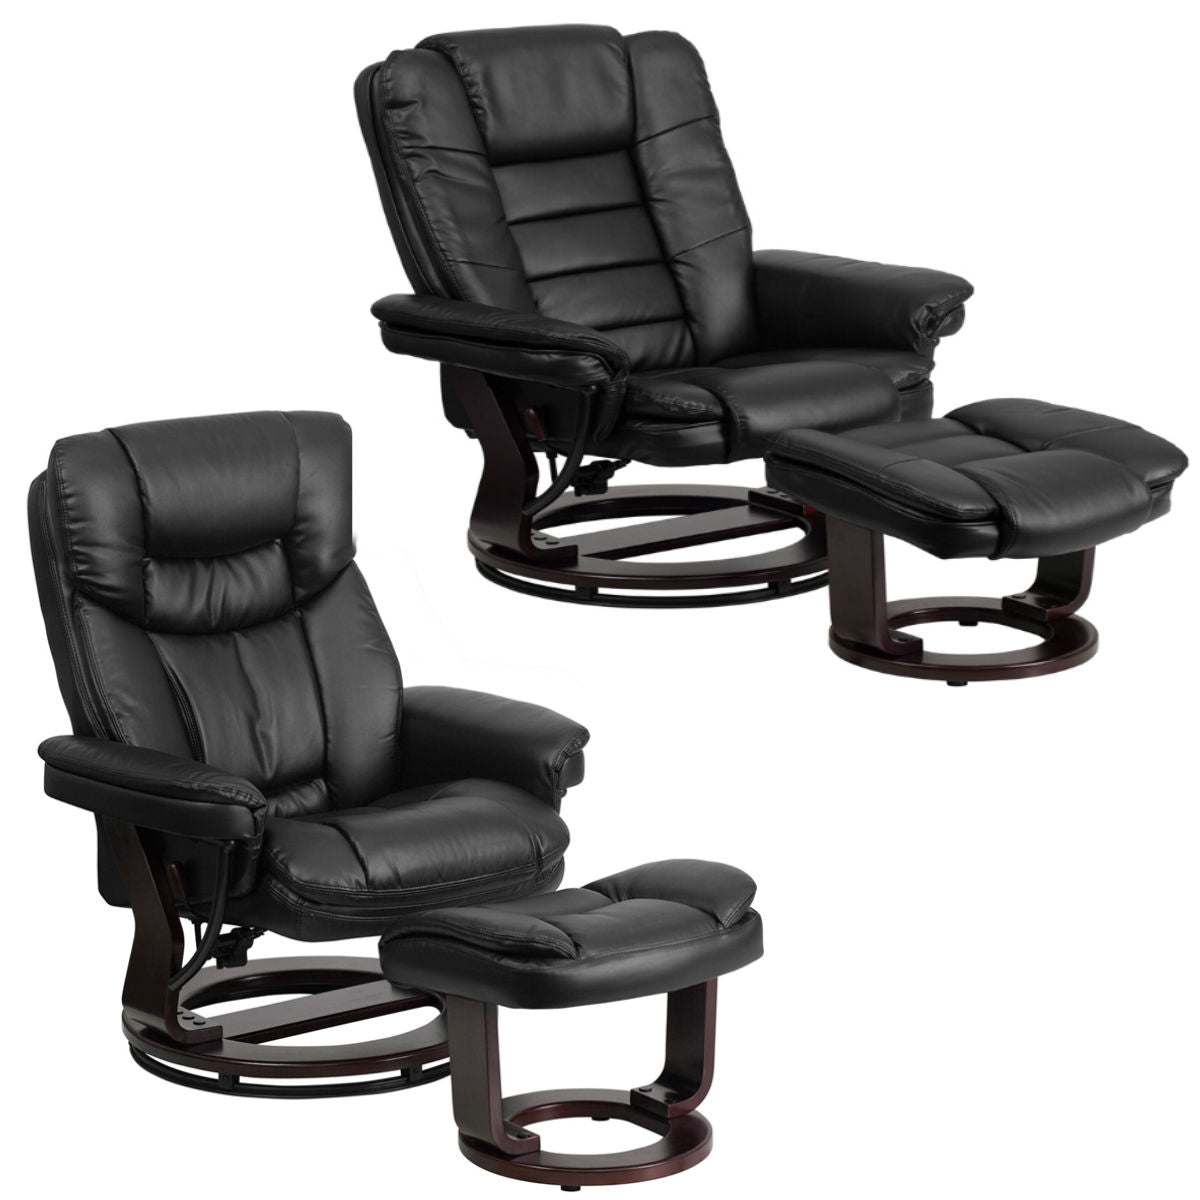 Flash Furniture two different design Contemporary Black Leather Recliner and Ottoman with Swiveling Mahogany Wood Base